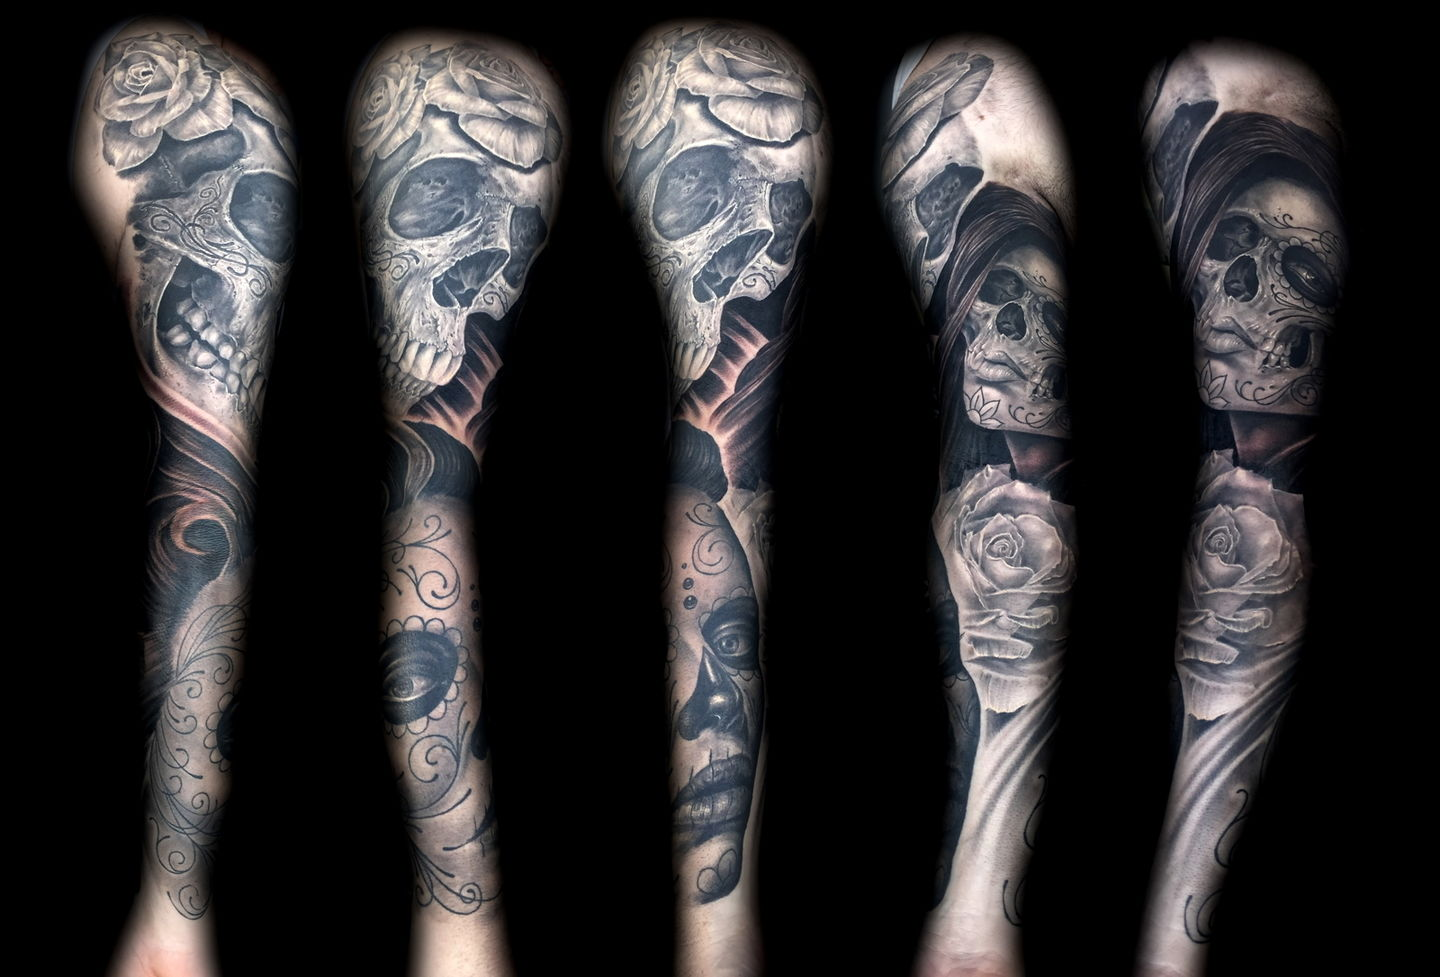 Las-vegas-tattoo-artist_joe-riley_day-of-the-dead-sleeve2